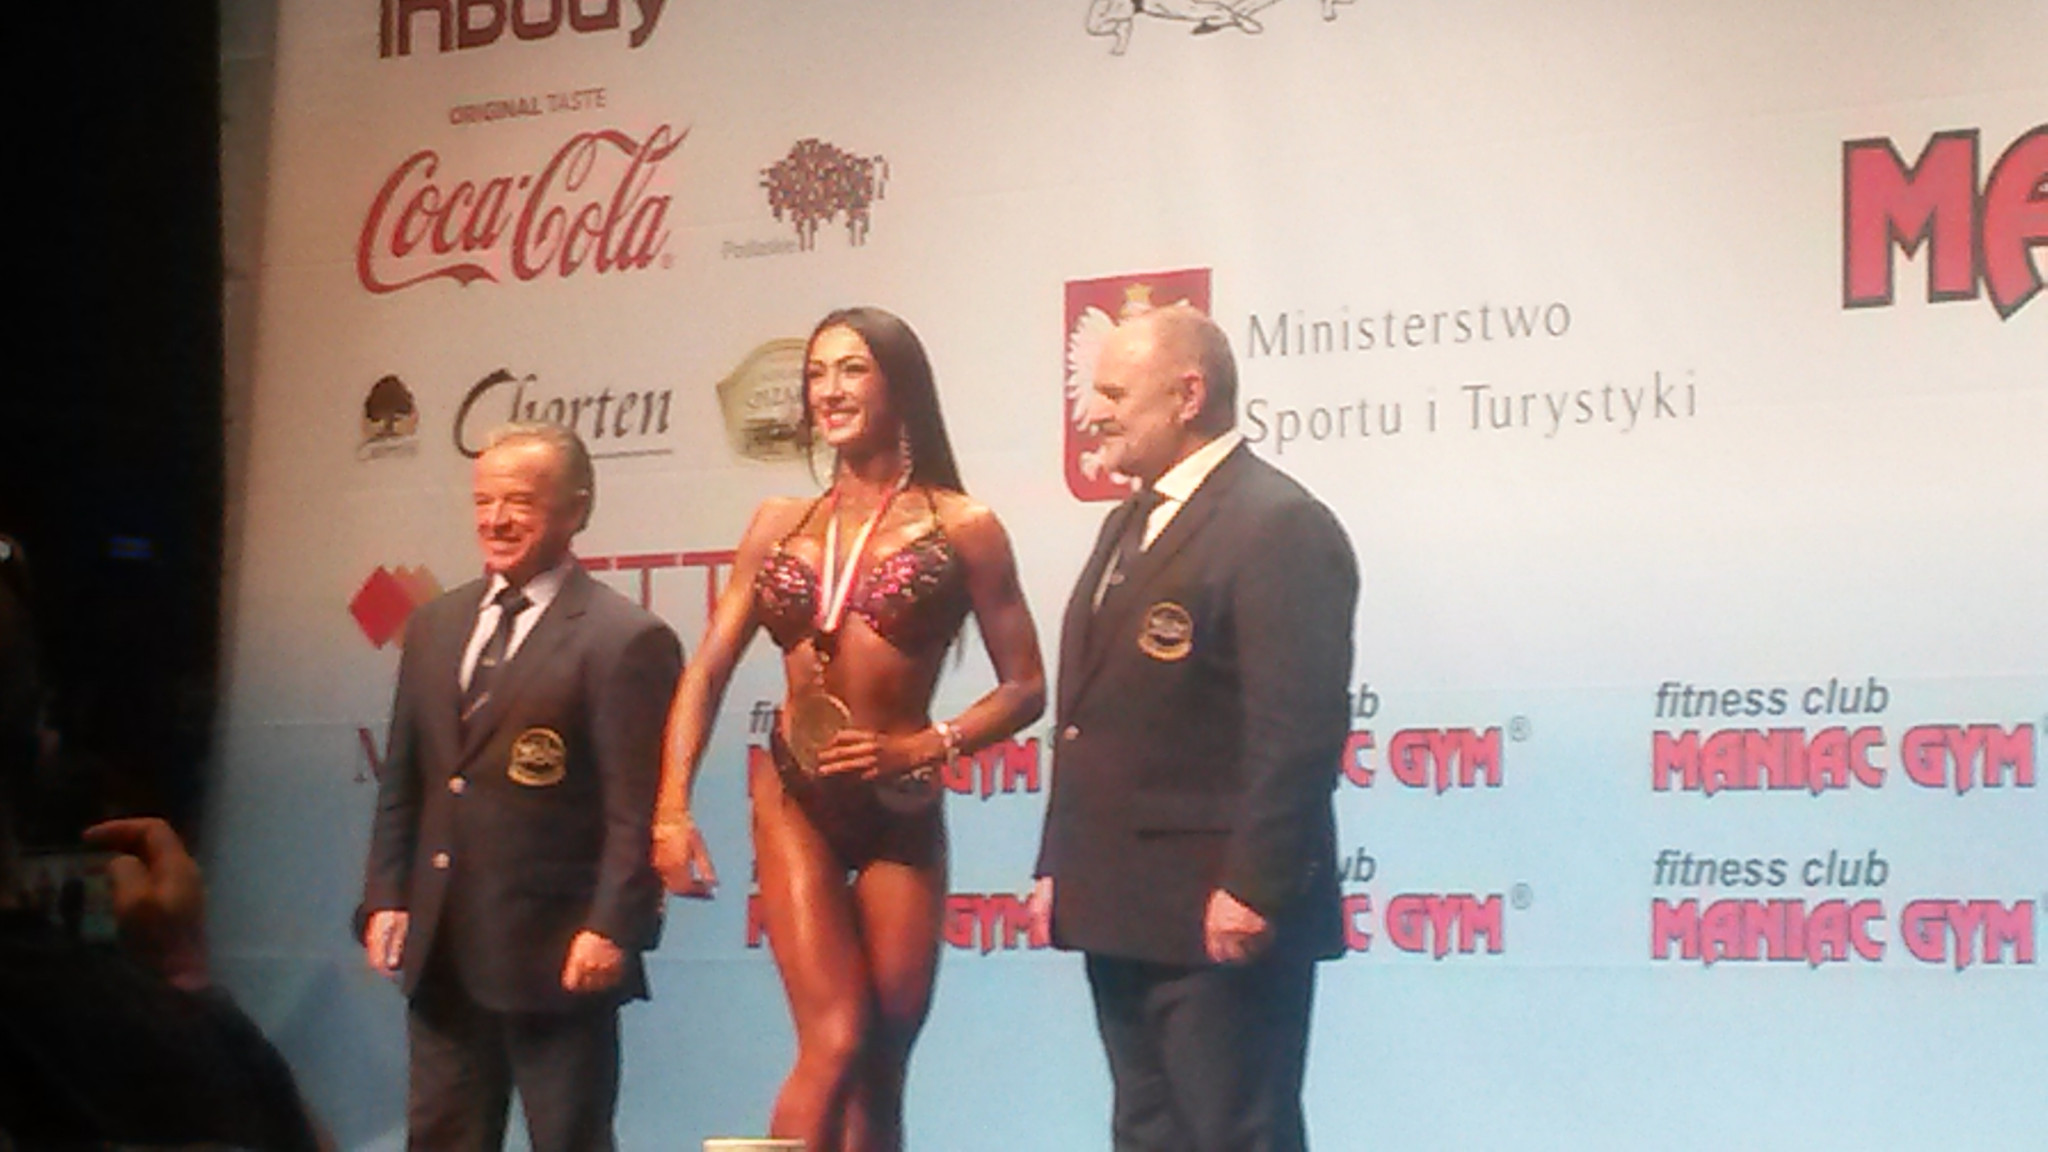 Lithuania celebrates as Ziauberyte claims overall women's bikini fitness title on final day of IFBB World Fitness Championships